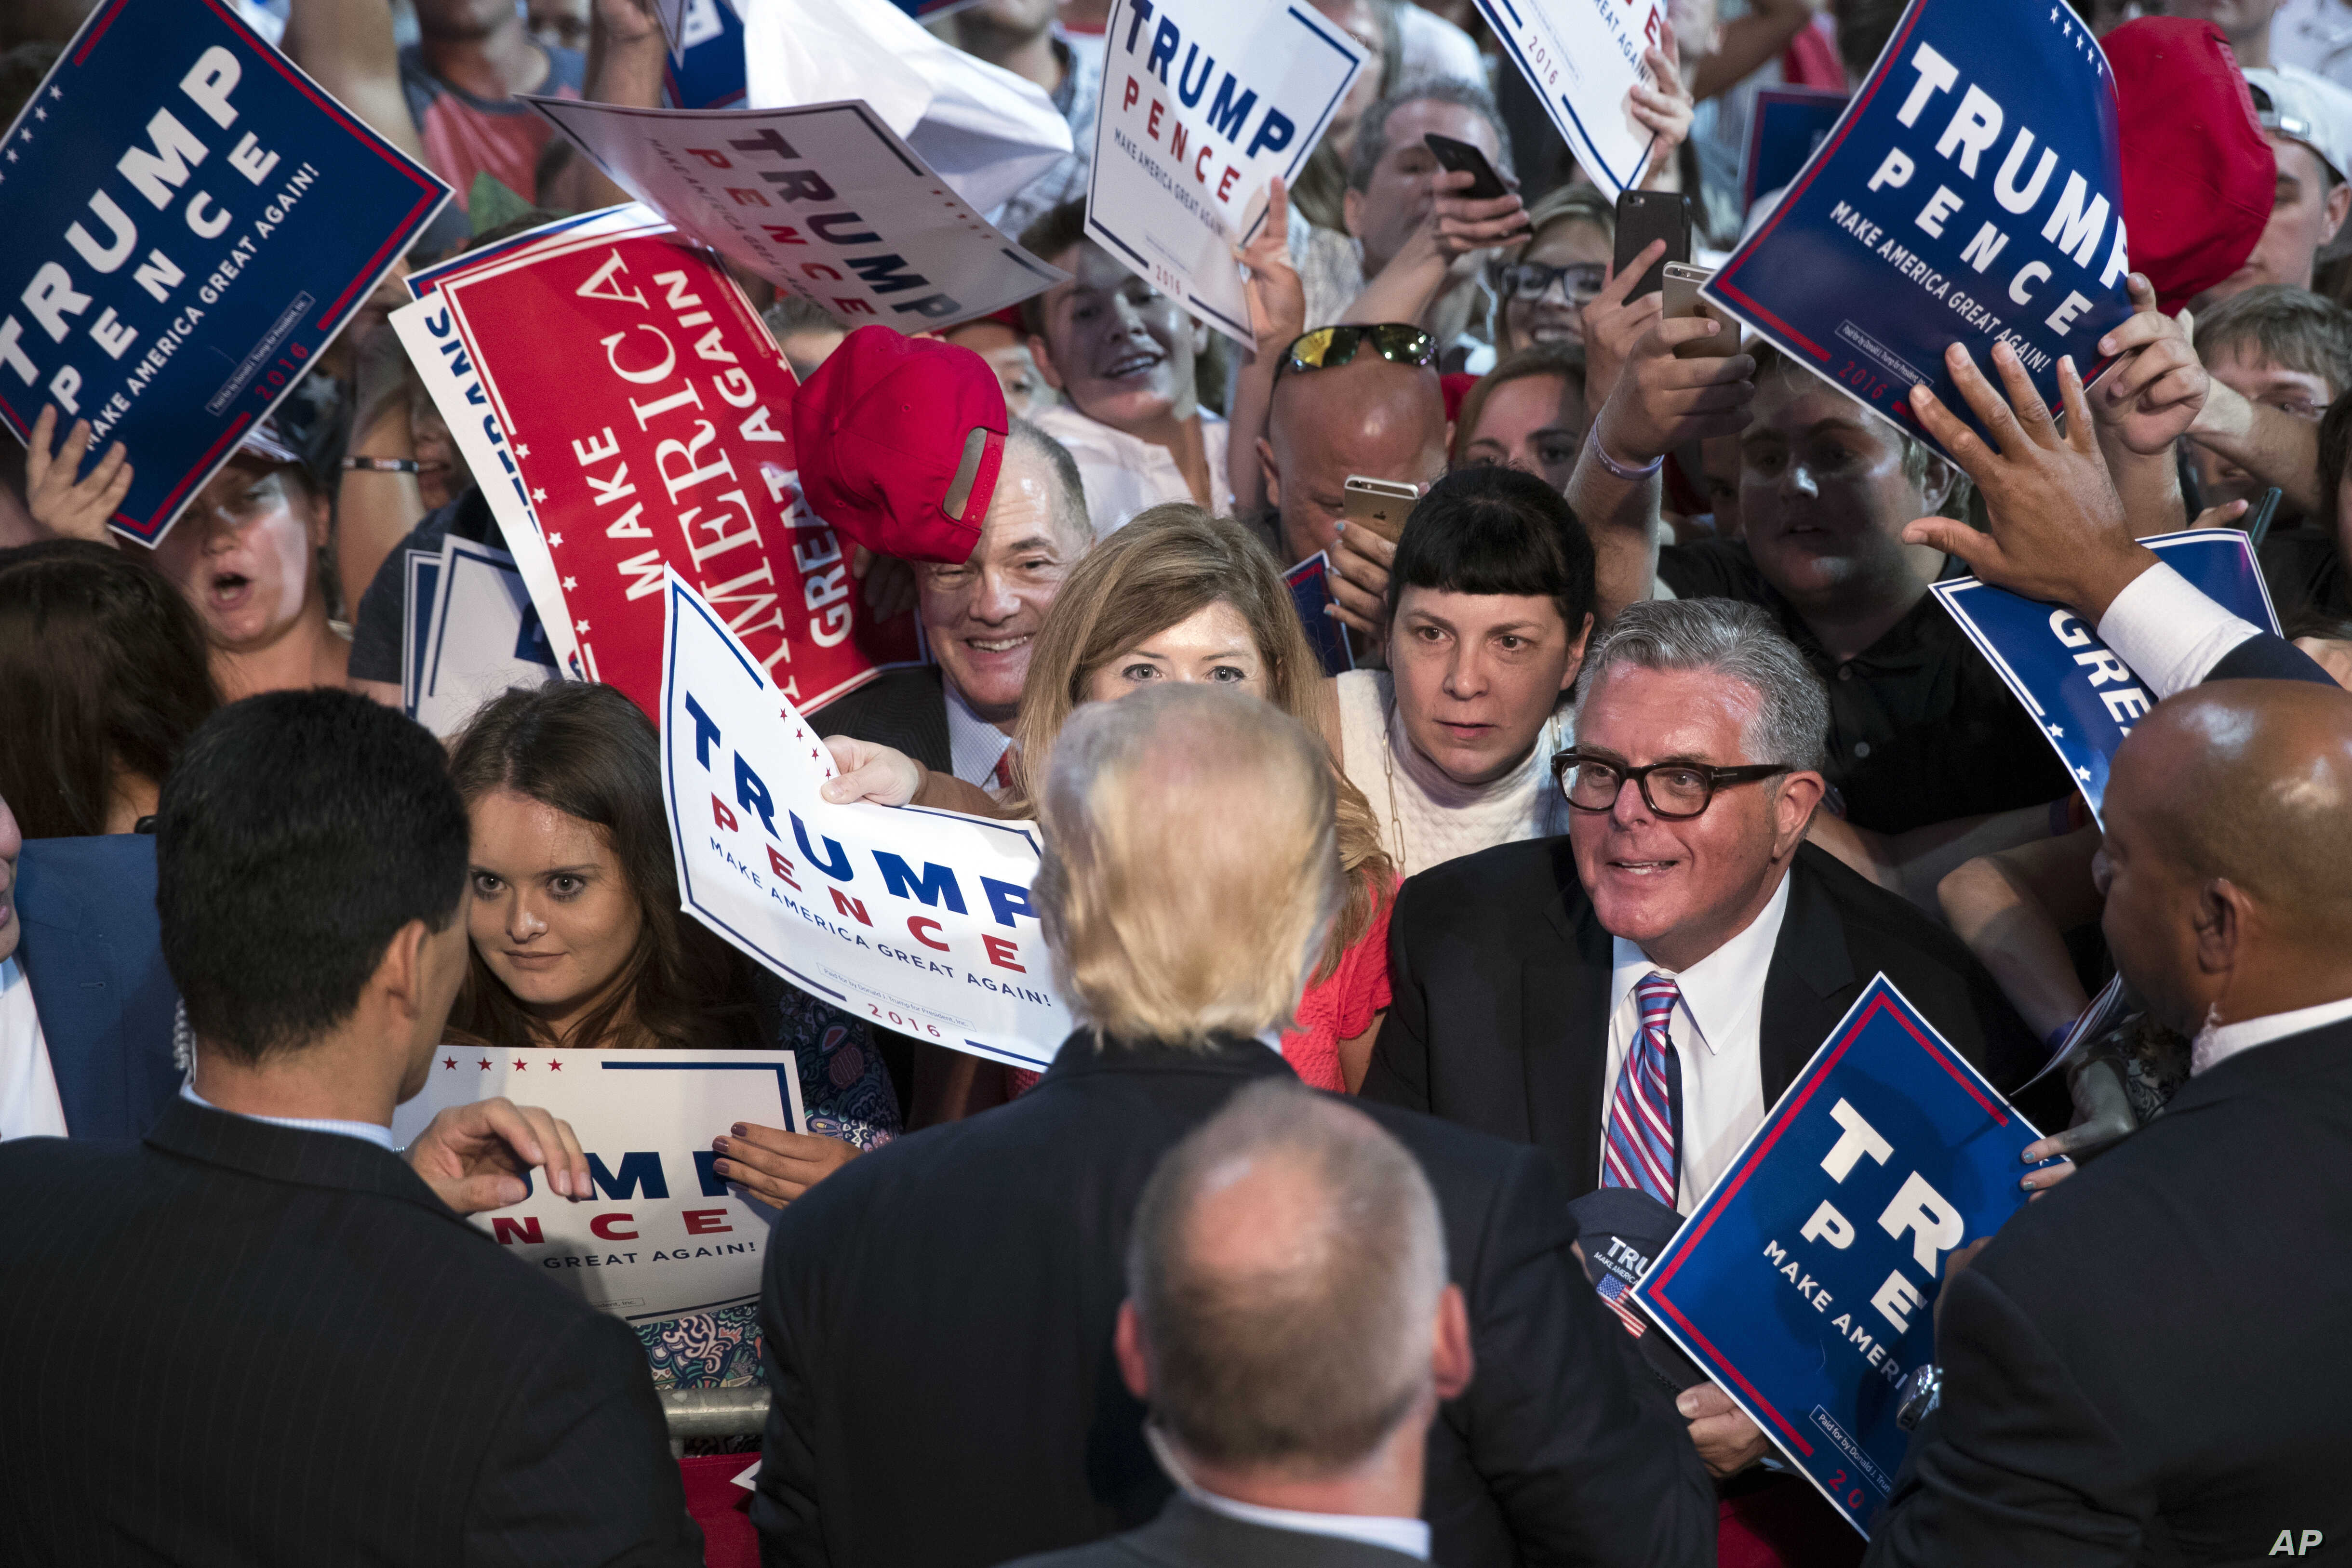 Supporters reach out for Republican presidential candidate Donald Trump during a campaign rally, July 27, 2016, in Toledo, Ohio.